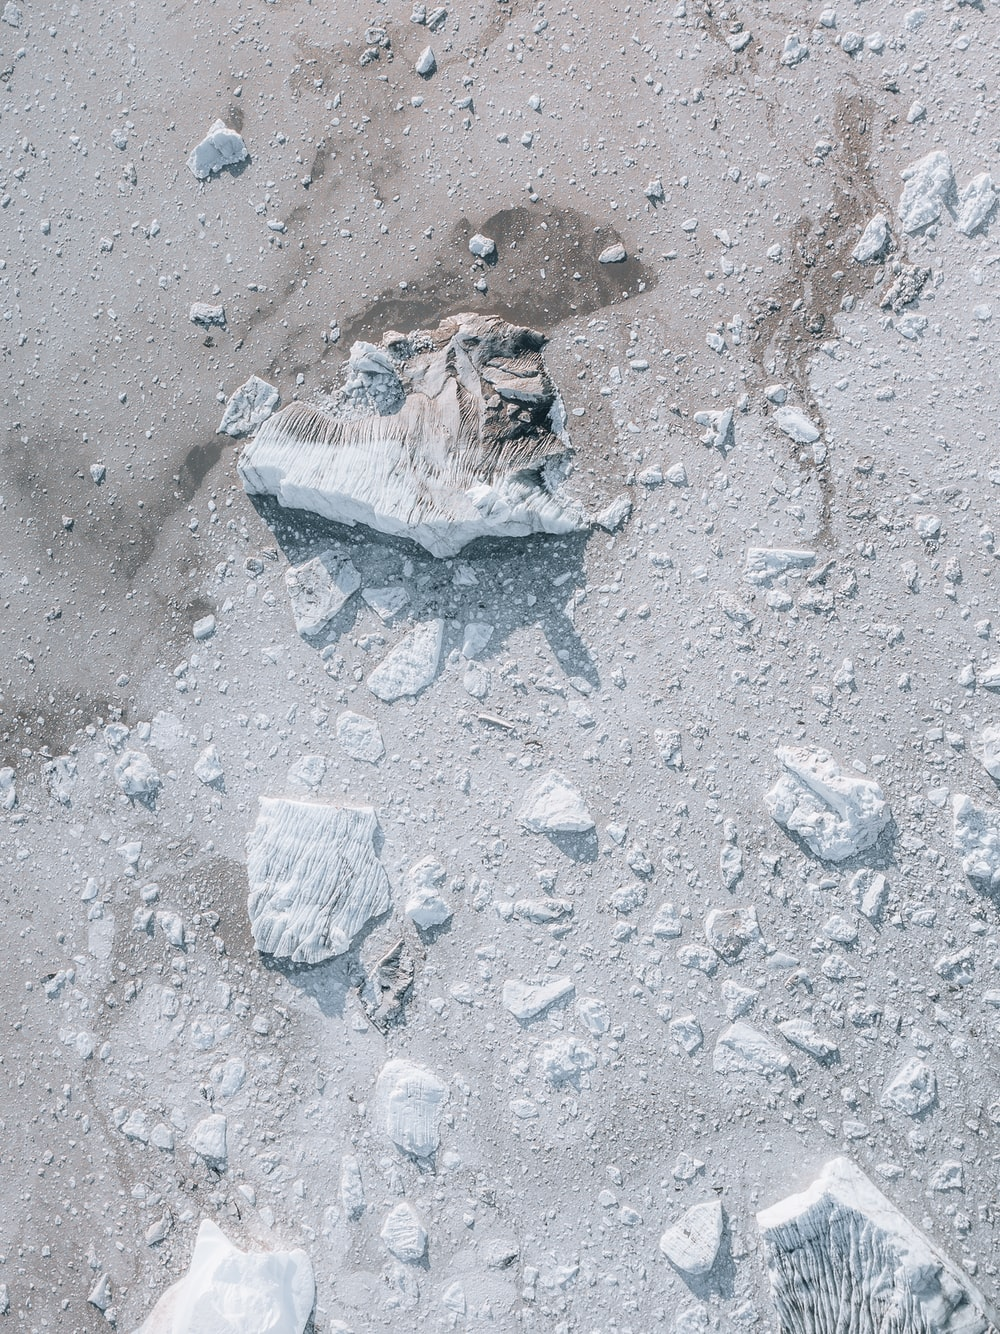 brown and gray stone on gray sand